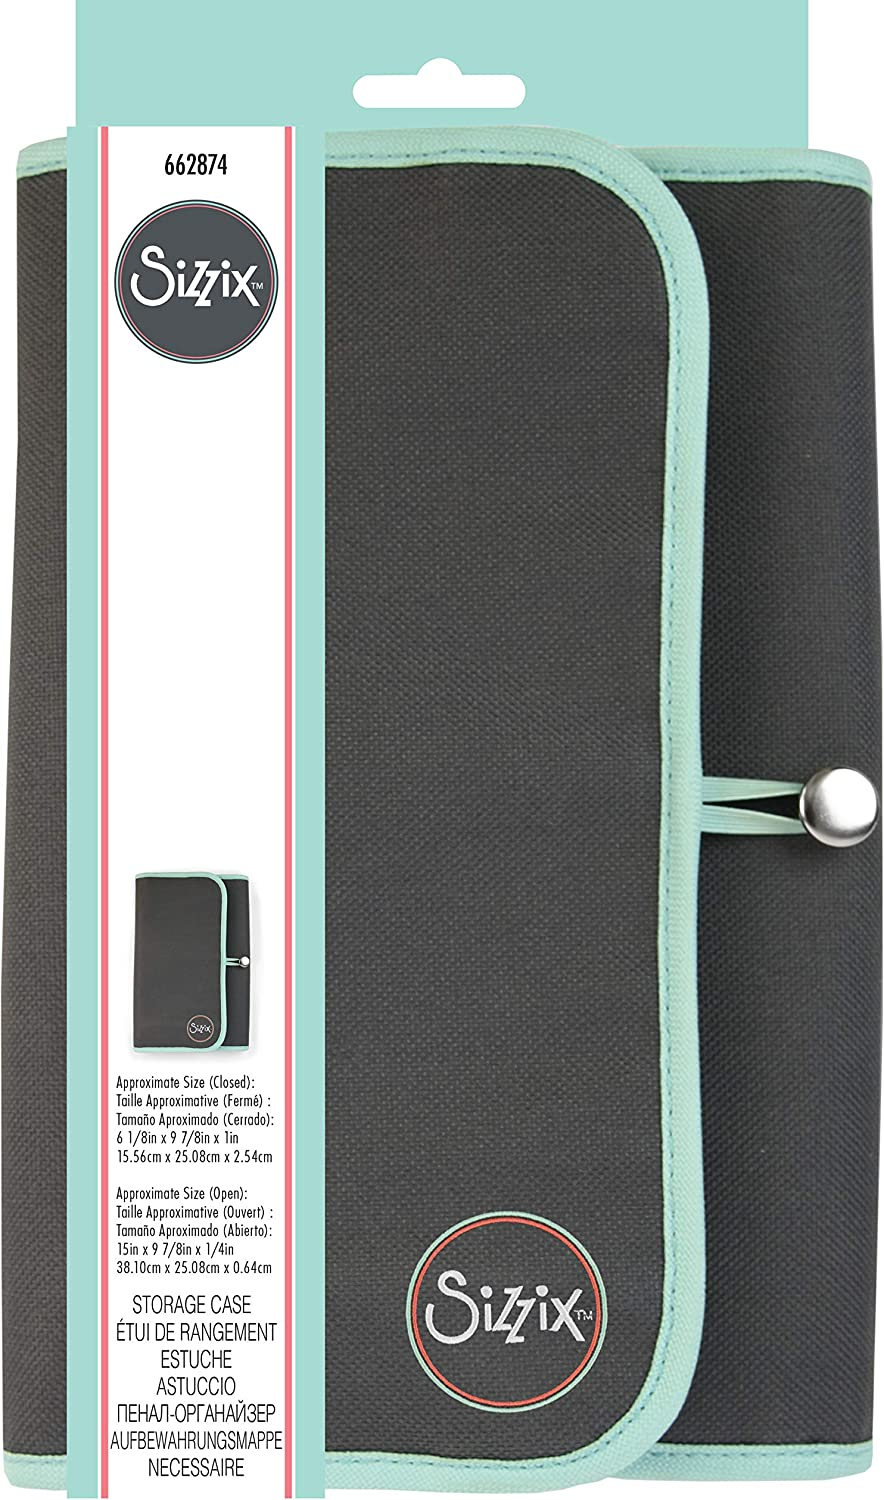 Sizzix 662874 Storage Case Craft Supplies us:one Size Multicolor